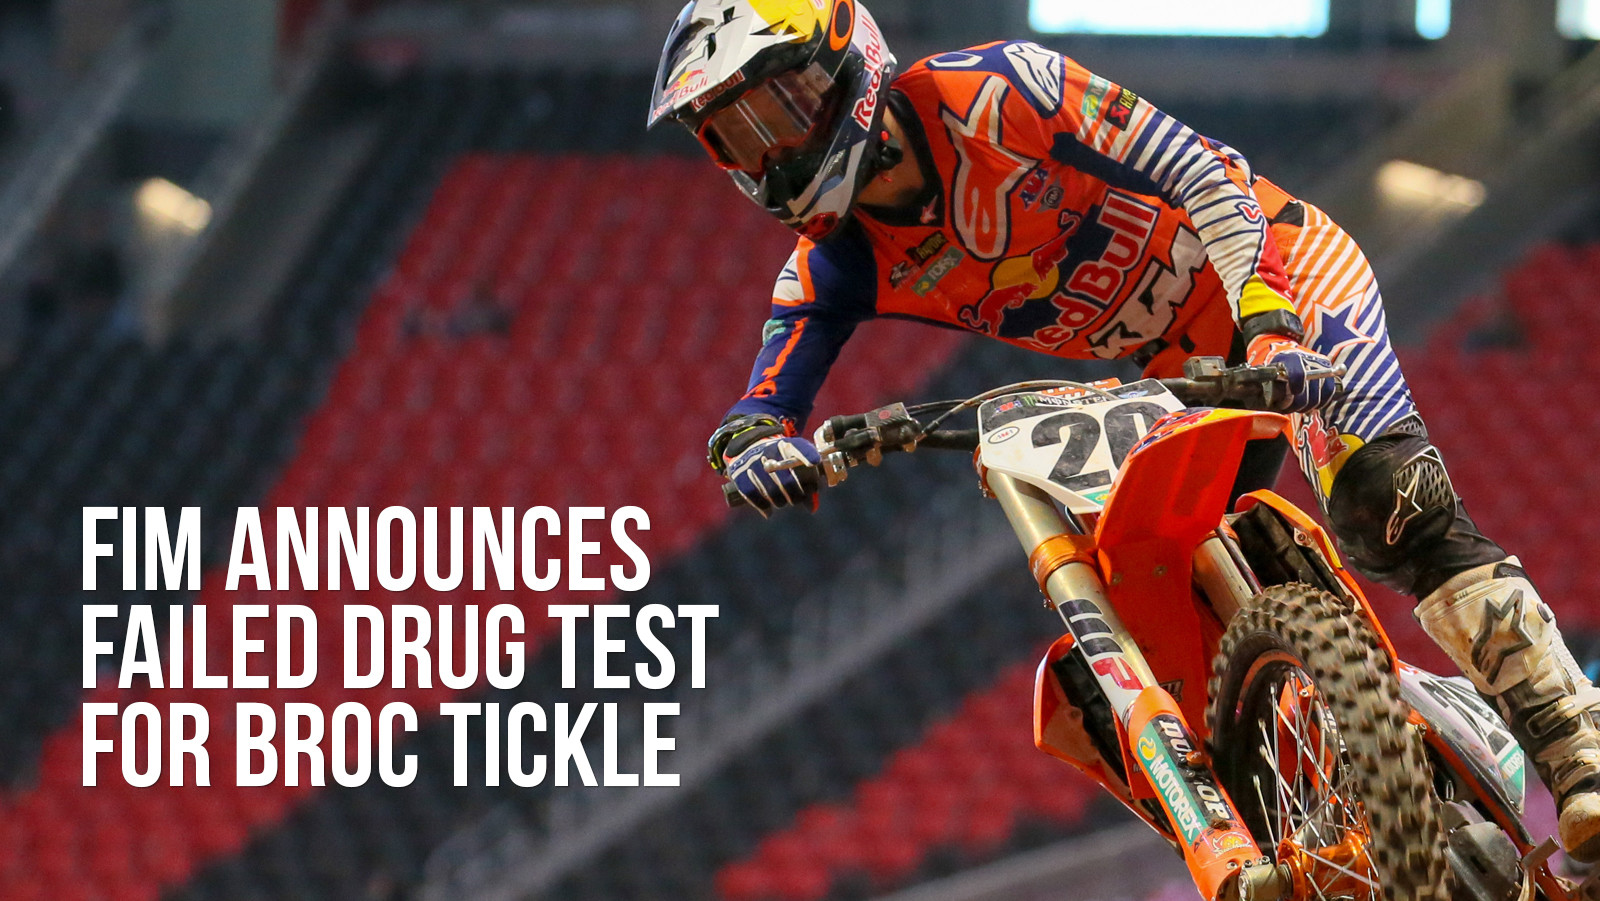 FIM Announces Failed WADA Drug Test for Broc Tickle